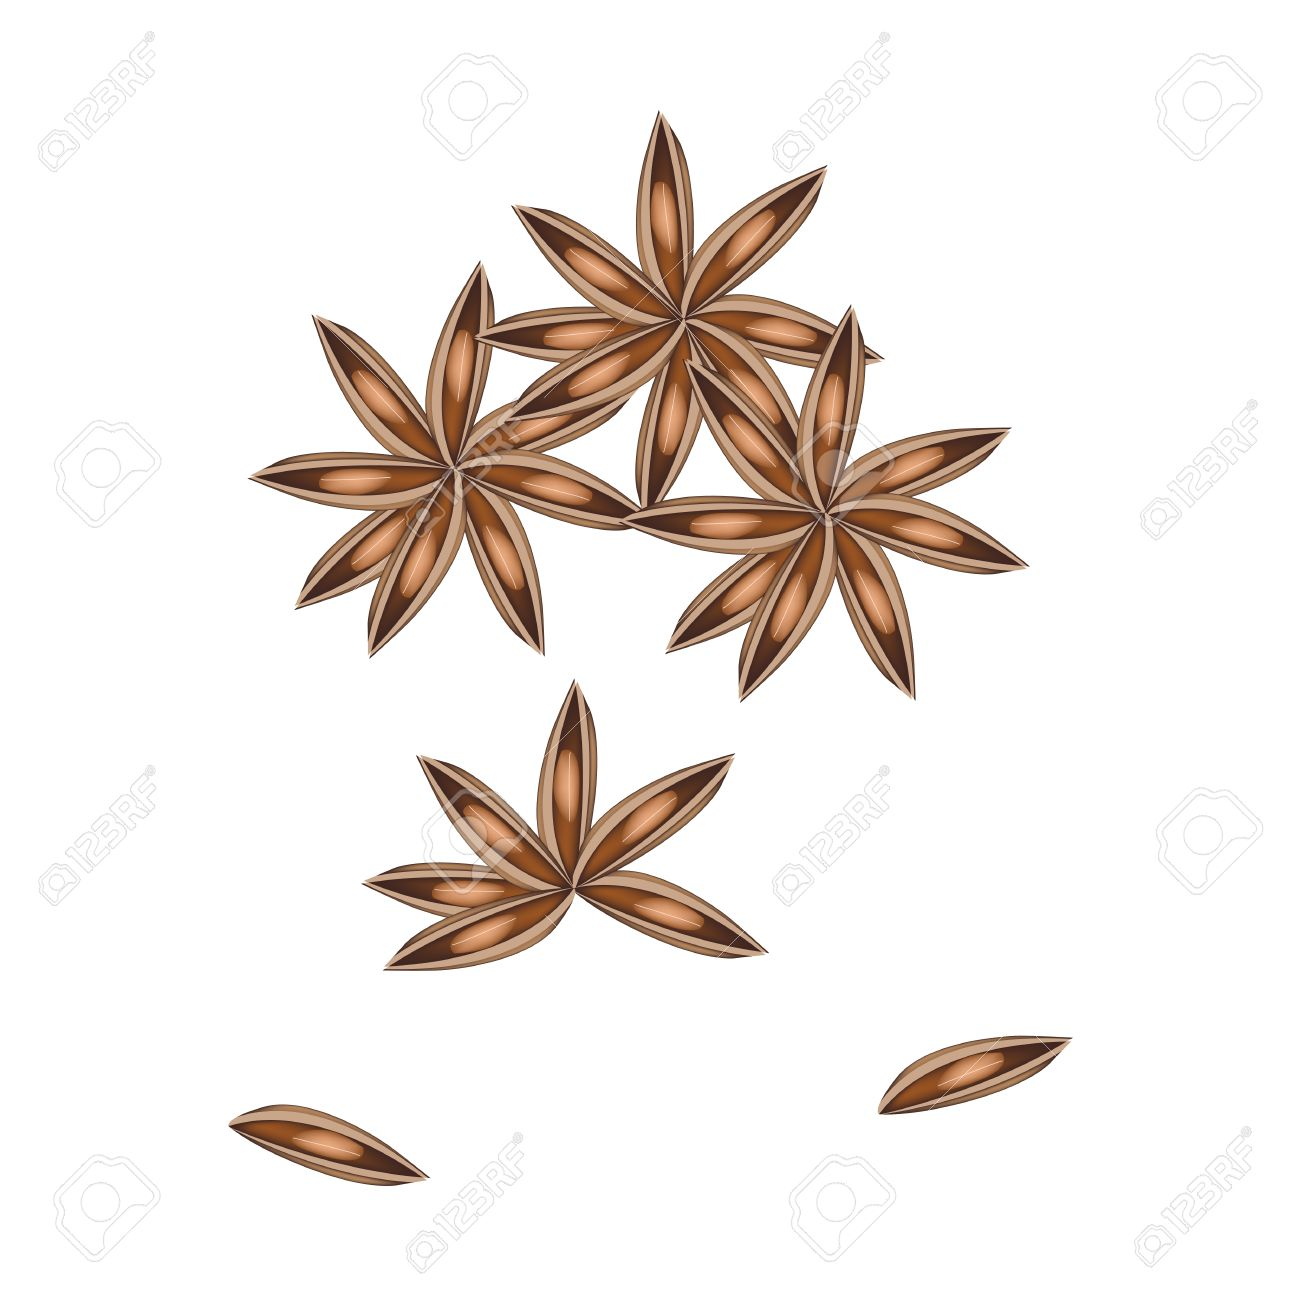 Vegetable And Herb, A Pile Of Dried Star Anise, Star Aniseed.